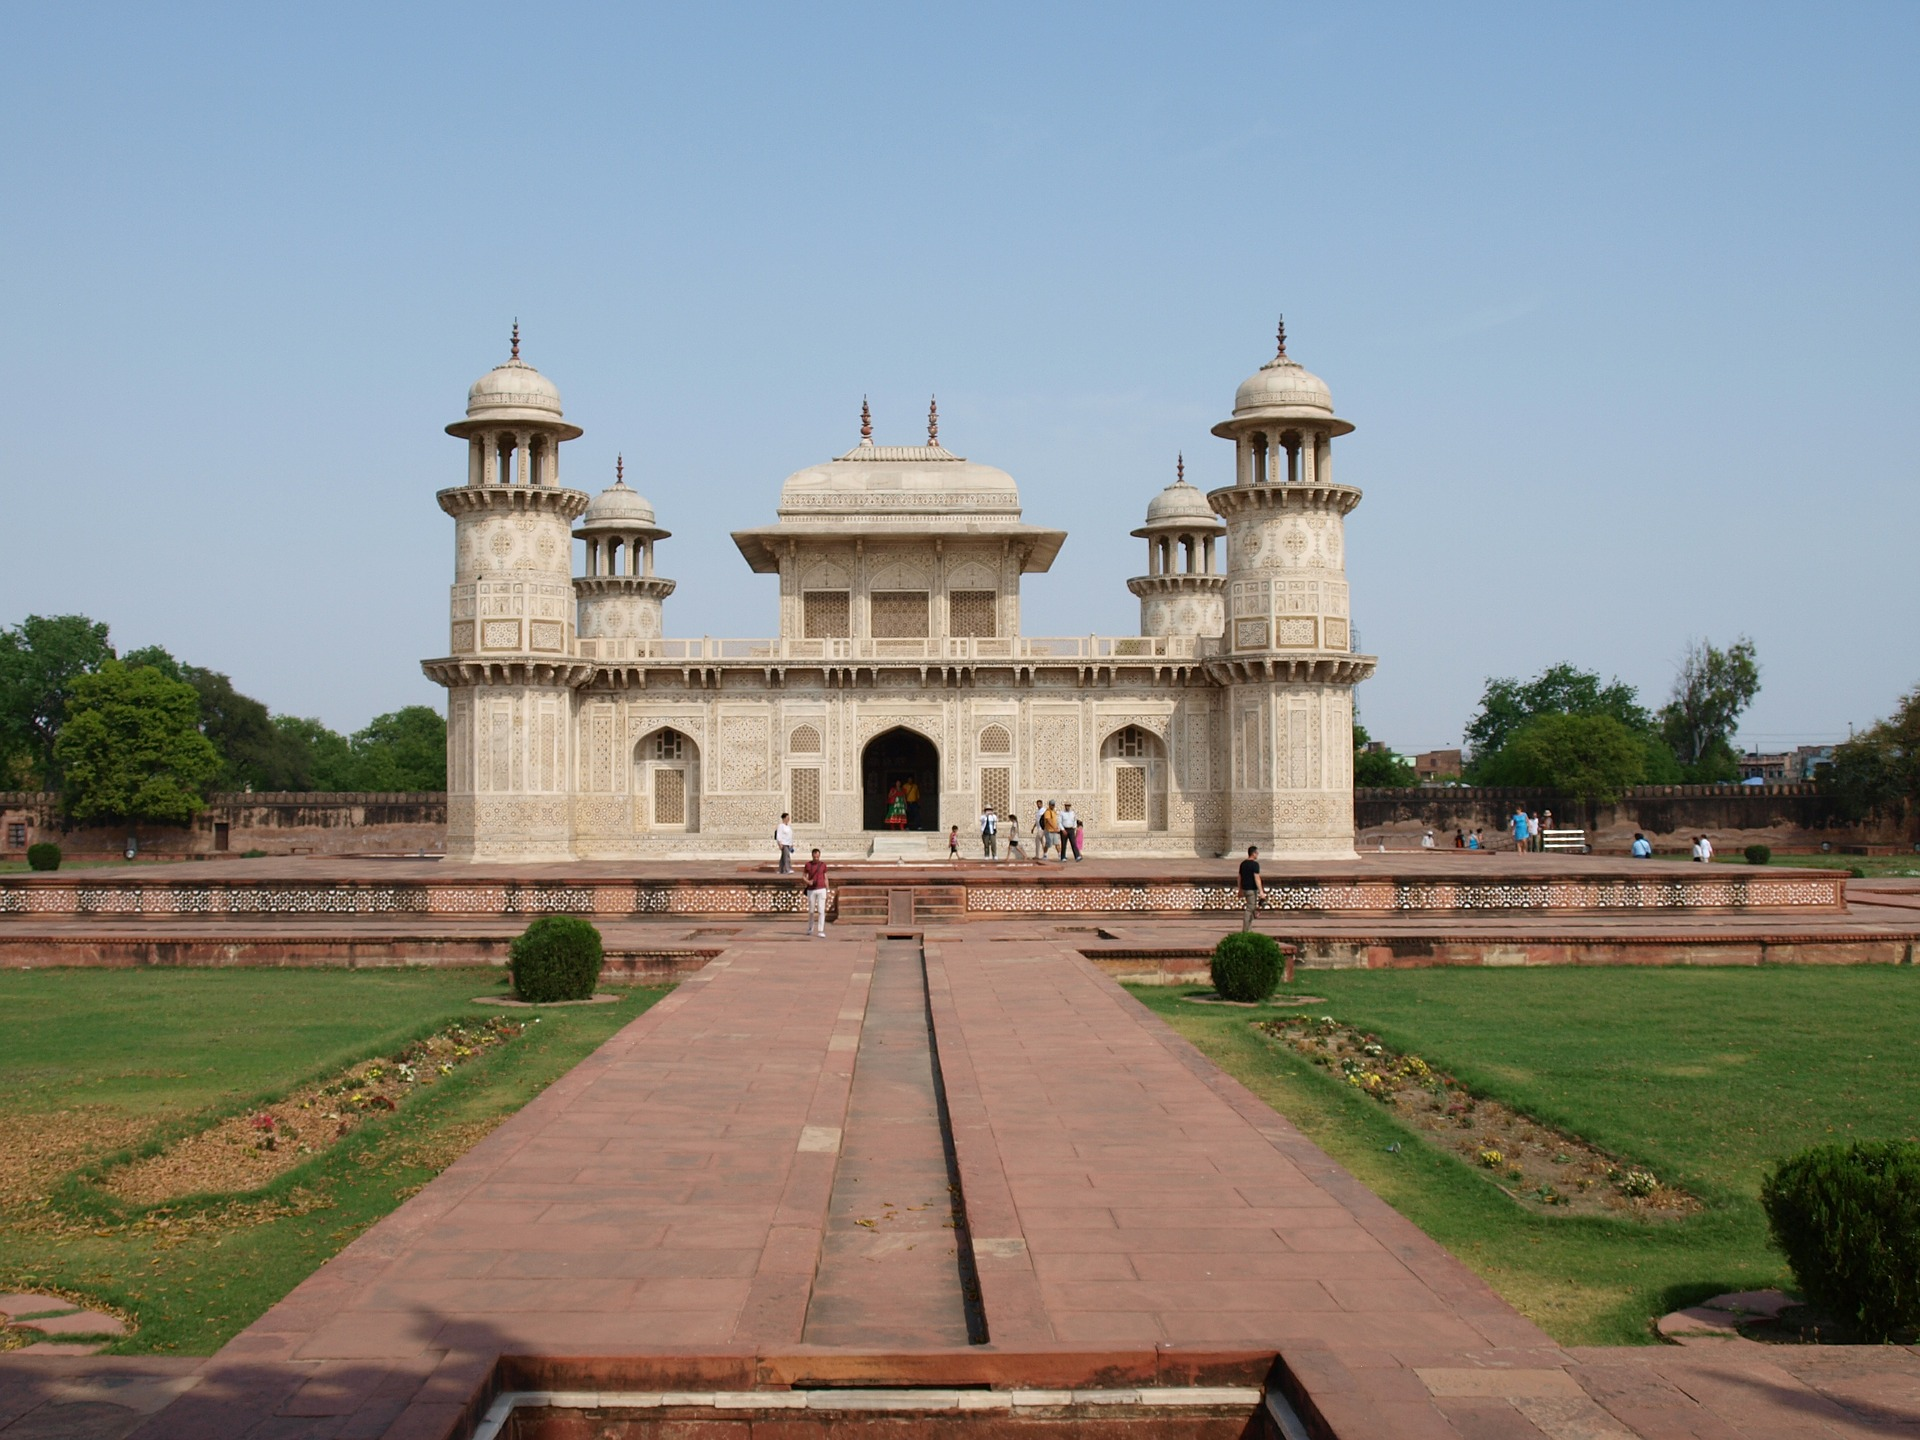 The Golden Triangle & Beyond - Itmad ud Daulah, Baby Taj, Agra, India